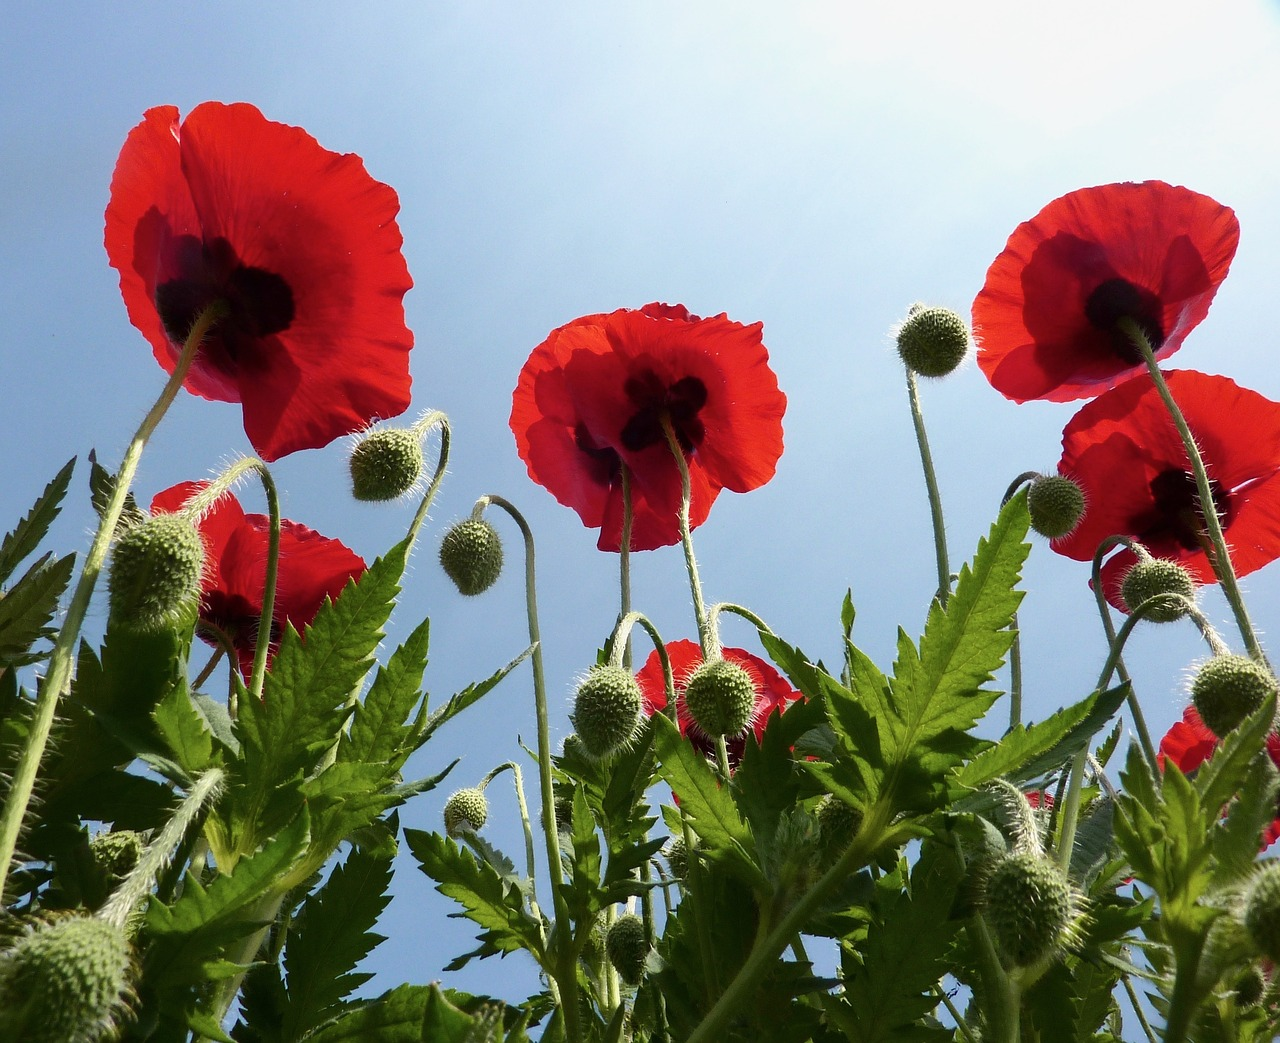 Poppies Redred Flowersgreen Leavespoppyred Free Photo From